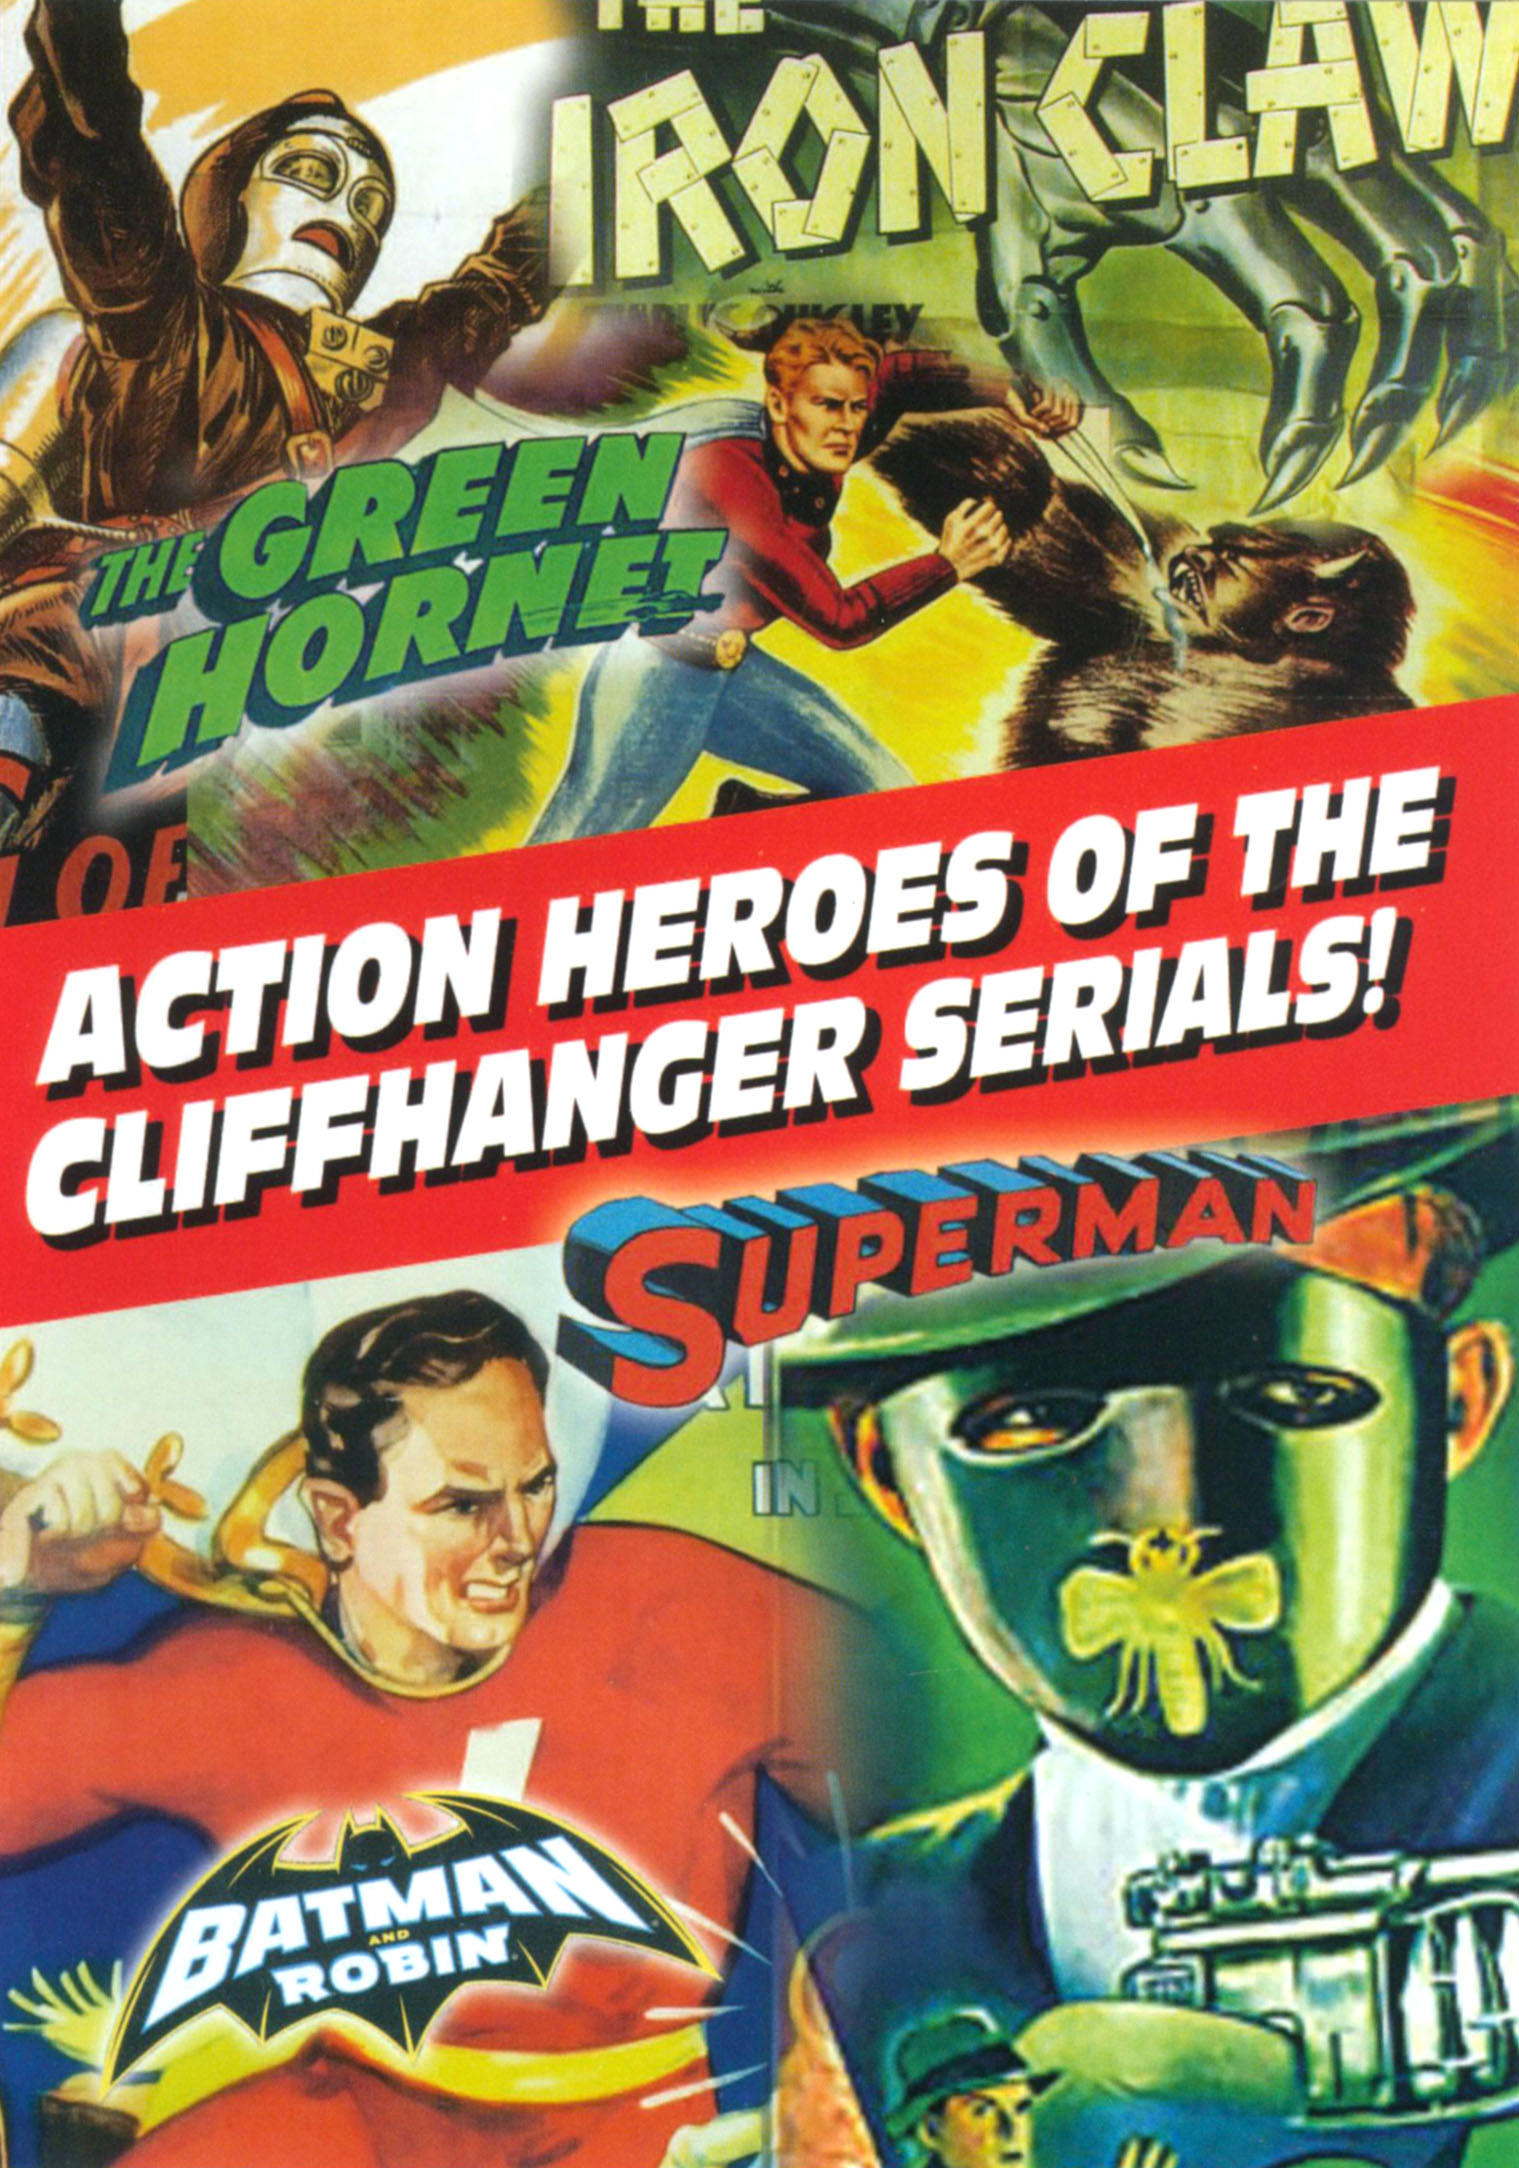 Action Heroes of the Cliffhanger Serials